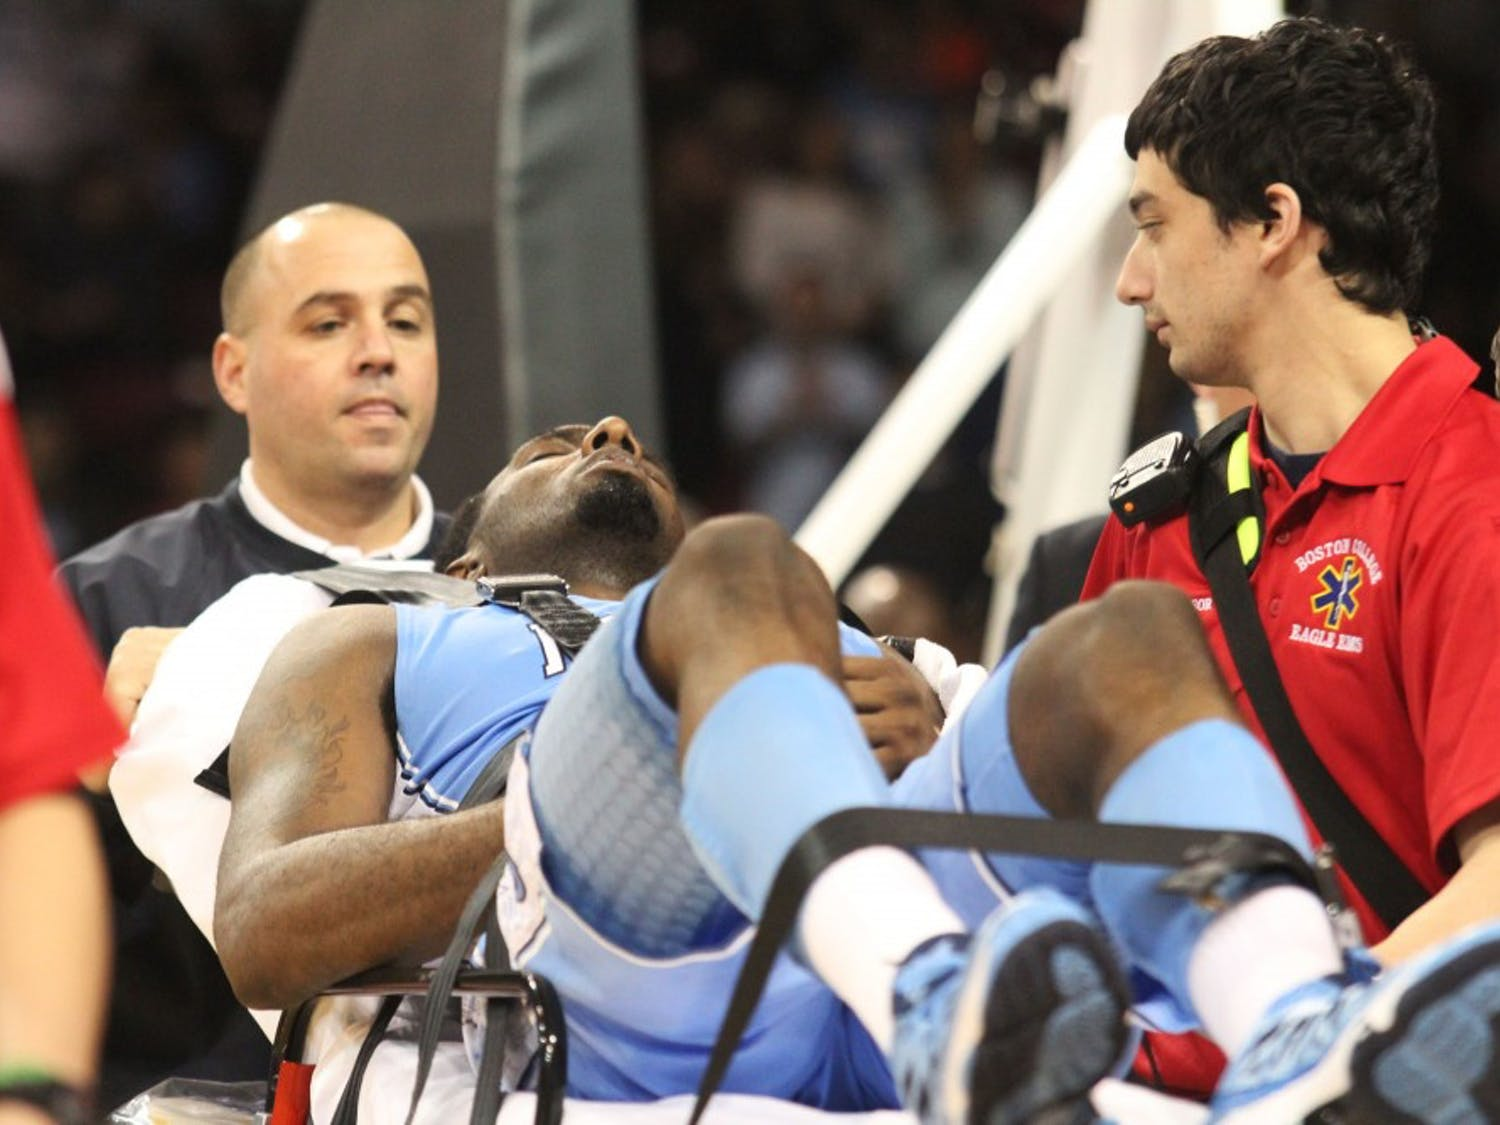 Hairston is carted off the court in a stretcher after his collision with Strickland.